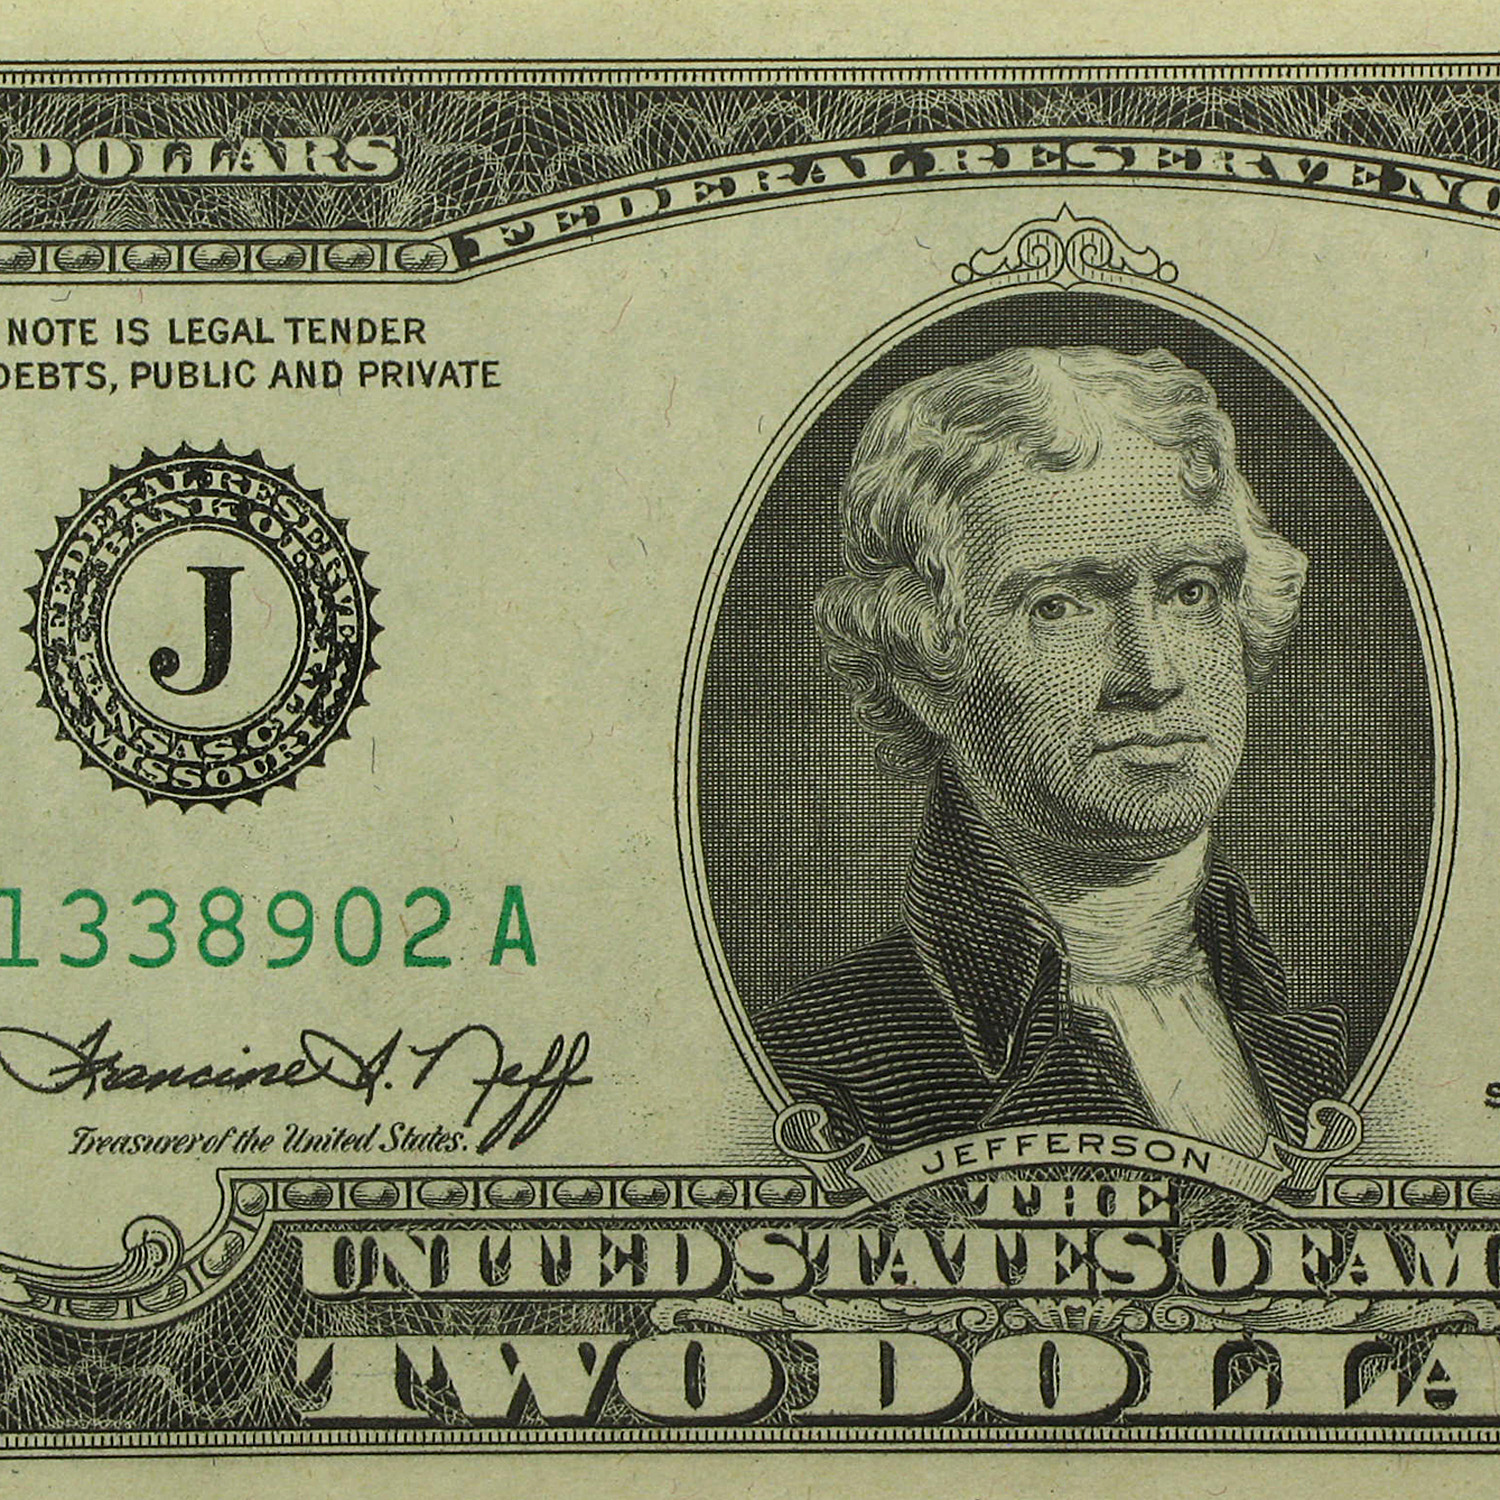 1976 (J-Kansas City) $2.00 FRN (Crisp Uncirculated) (50 Notes)